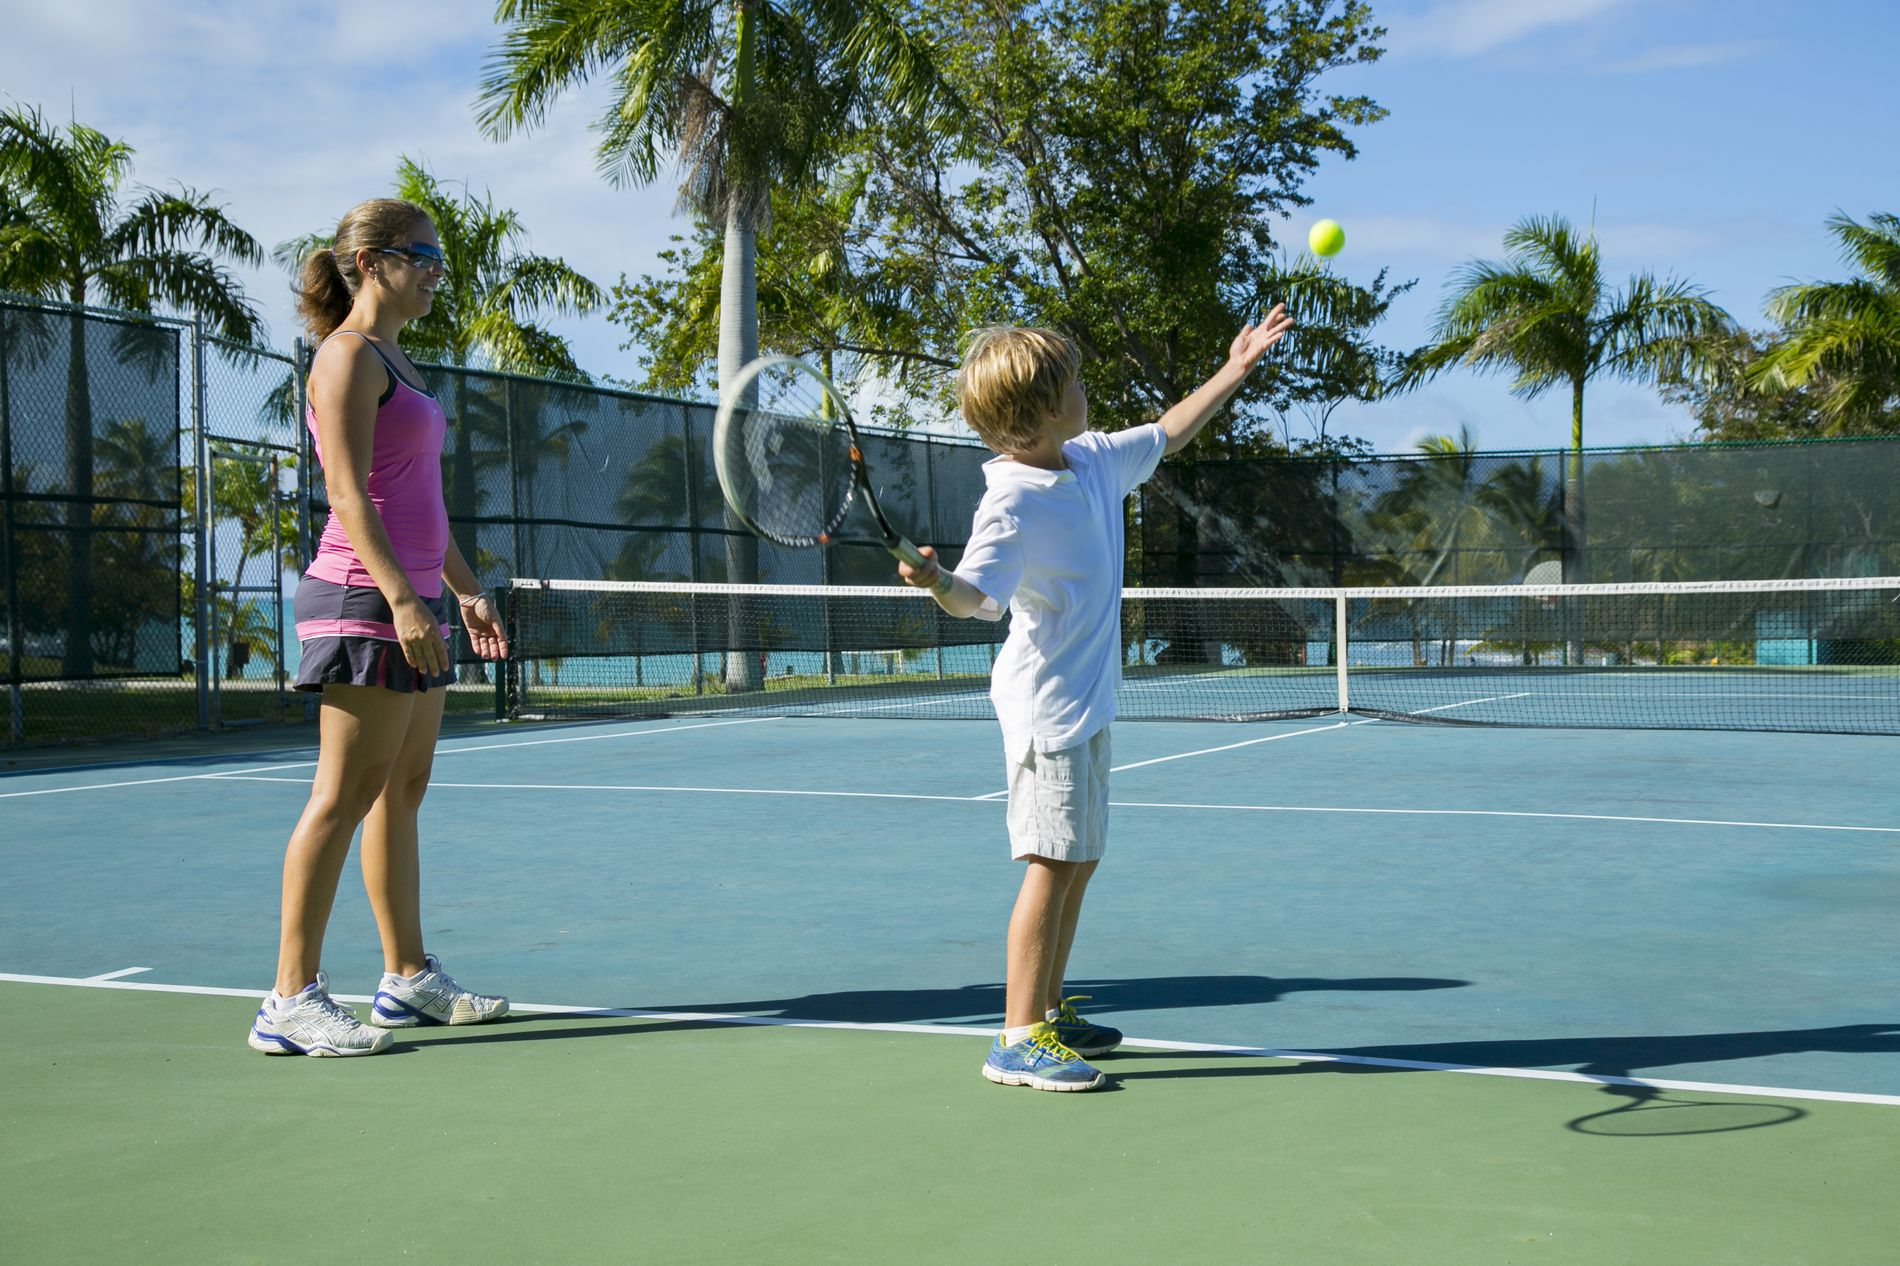 Mom & son playing tennis